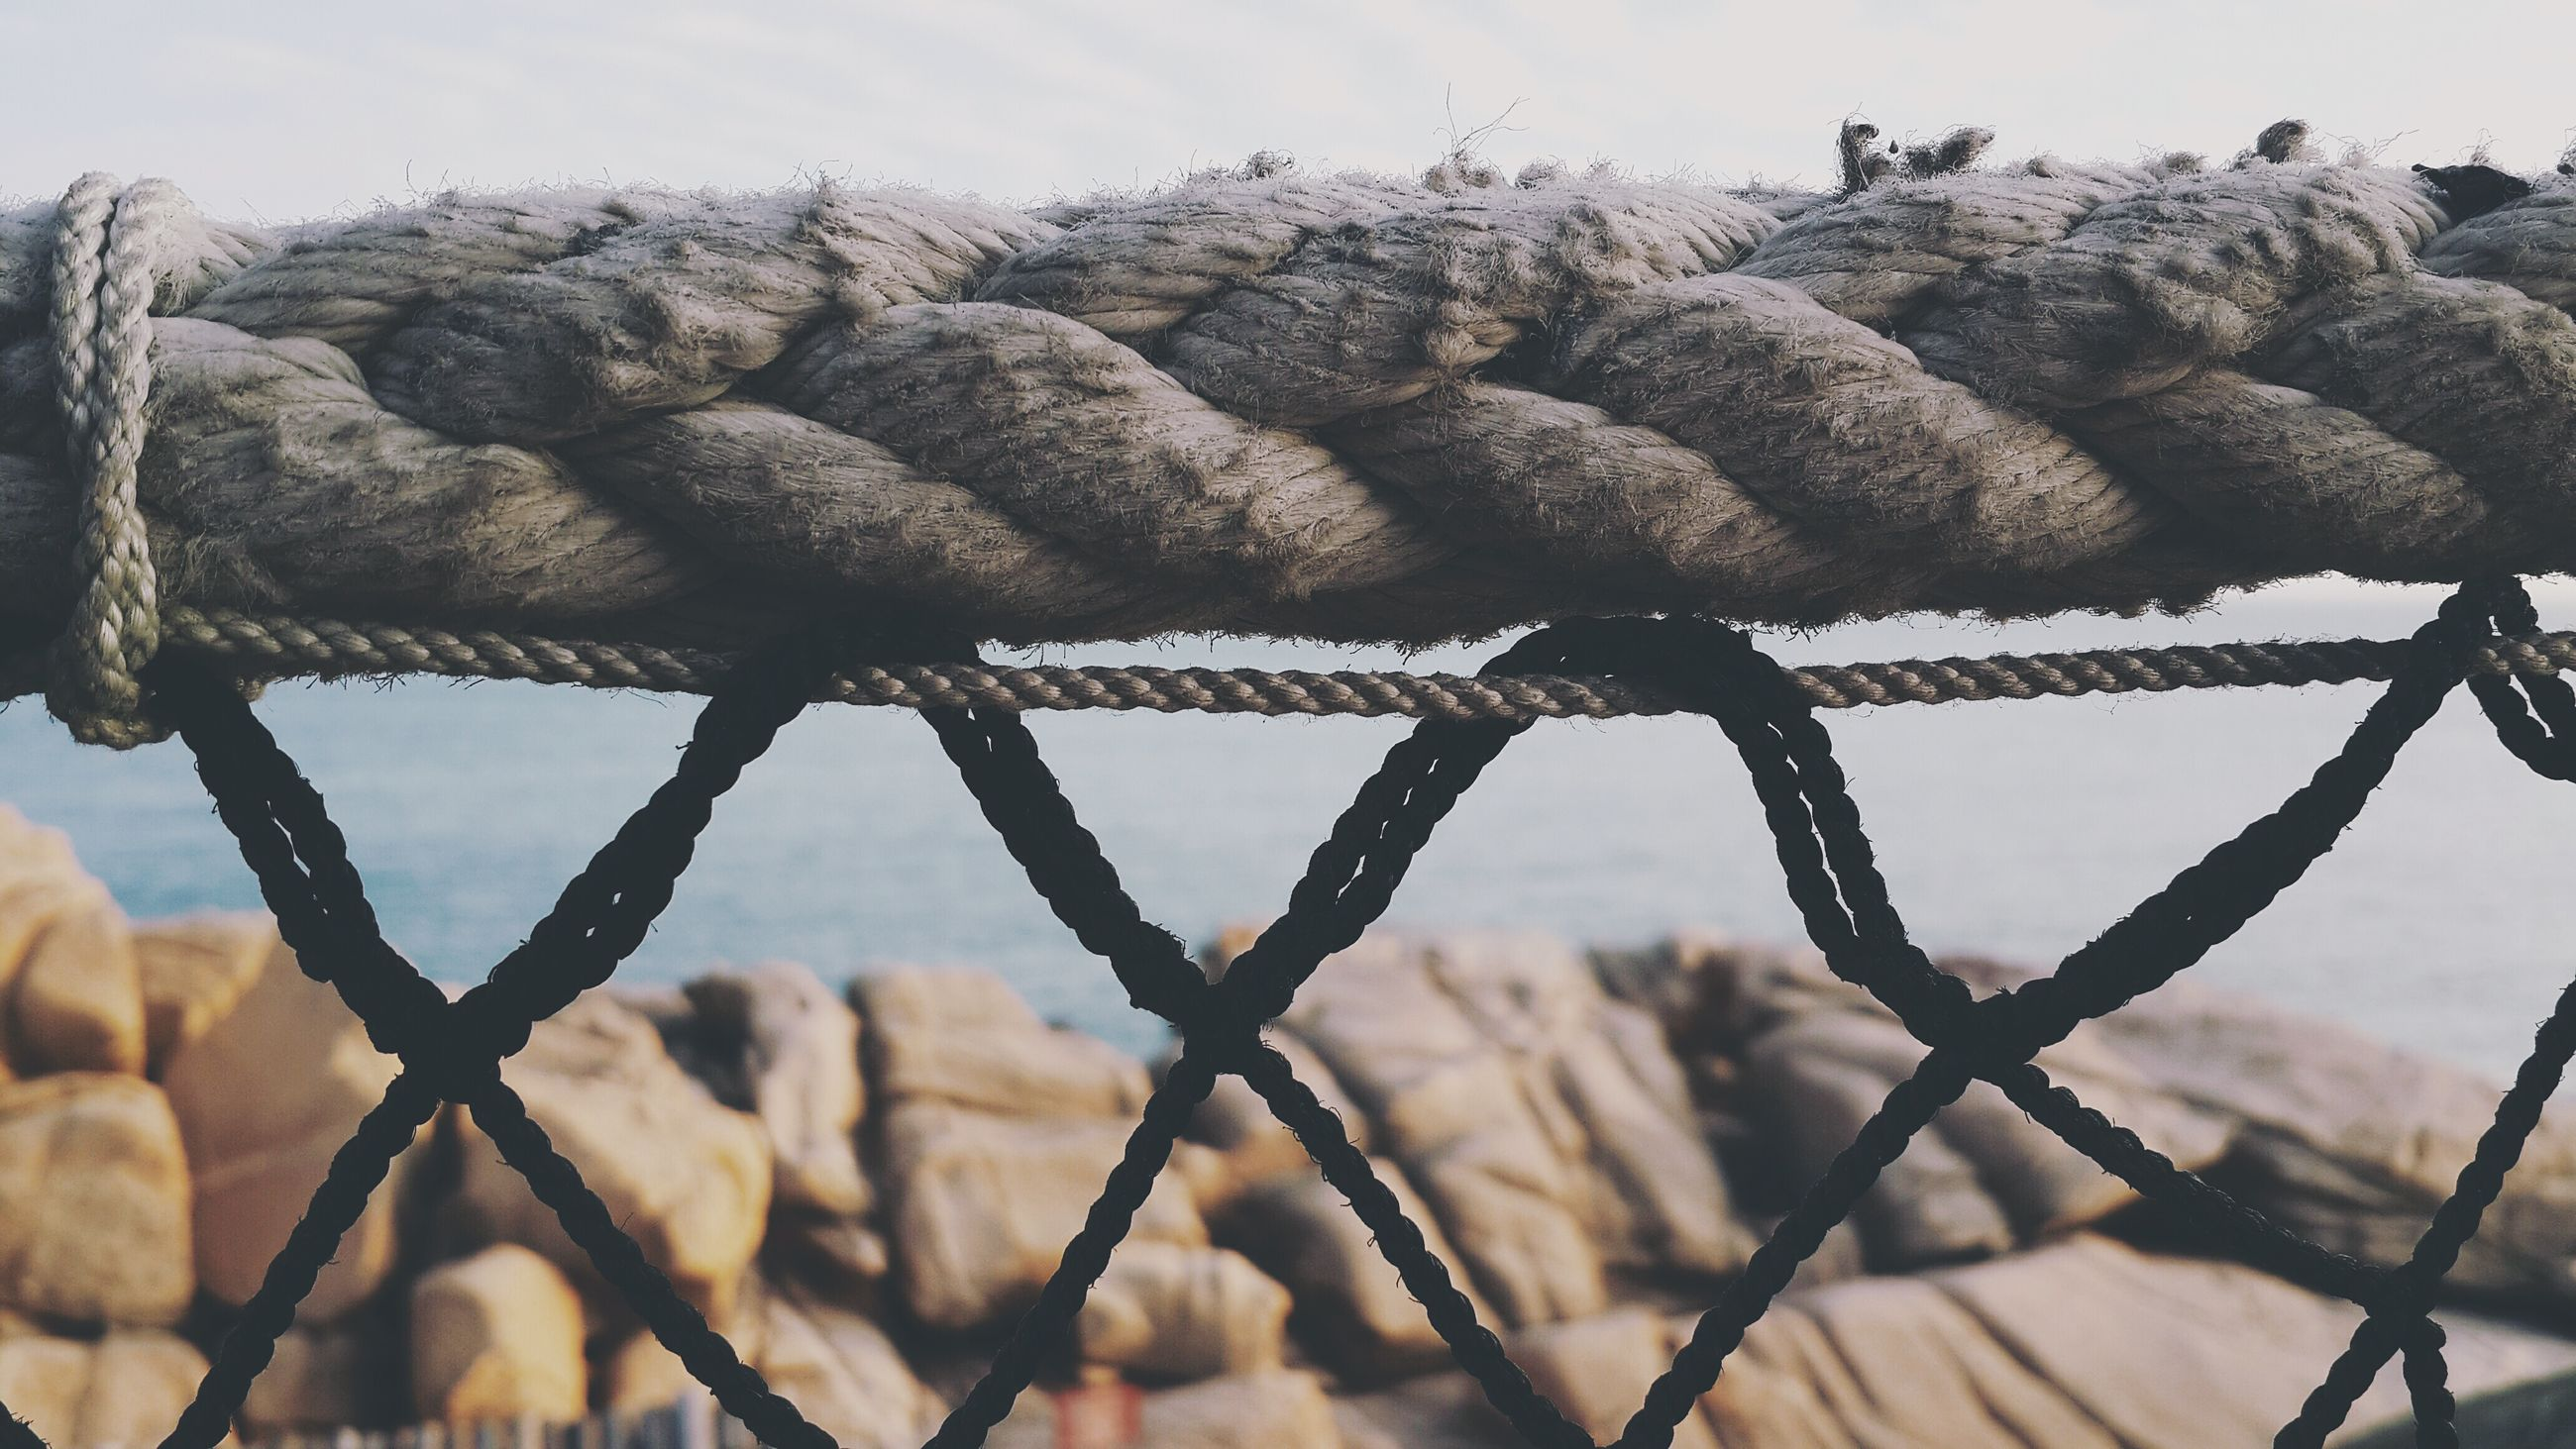 fence, sky, focus on foreground, protection, barbed wire, safety, chainlink fence, close-up, day, metal, security, nature, low angle view, dry, outdoors, rope, no people, perching, bird, animal themes